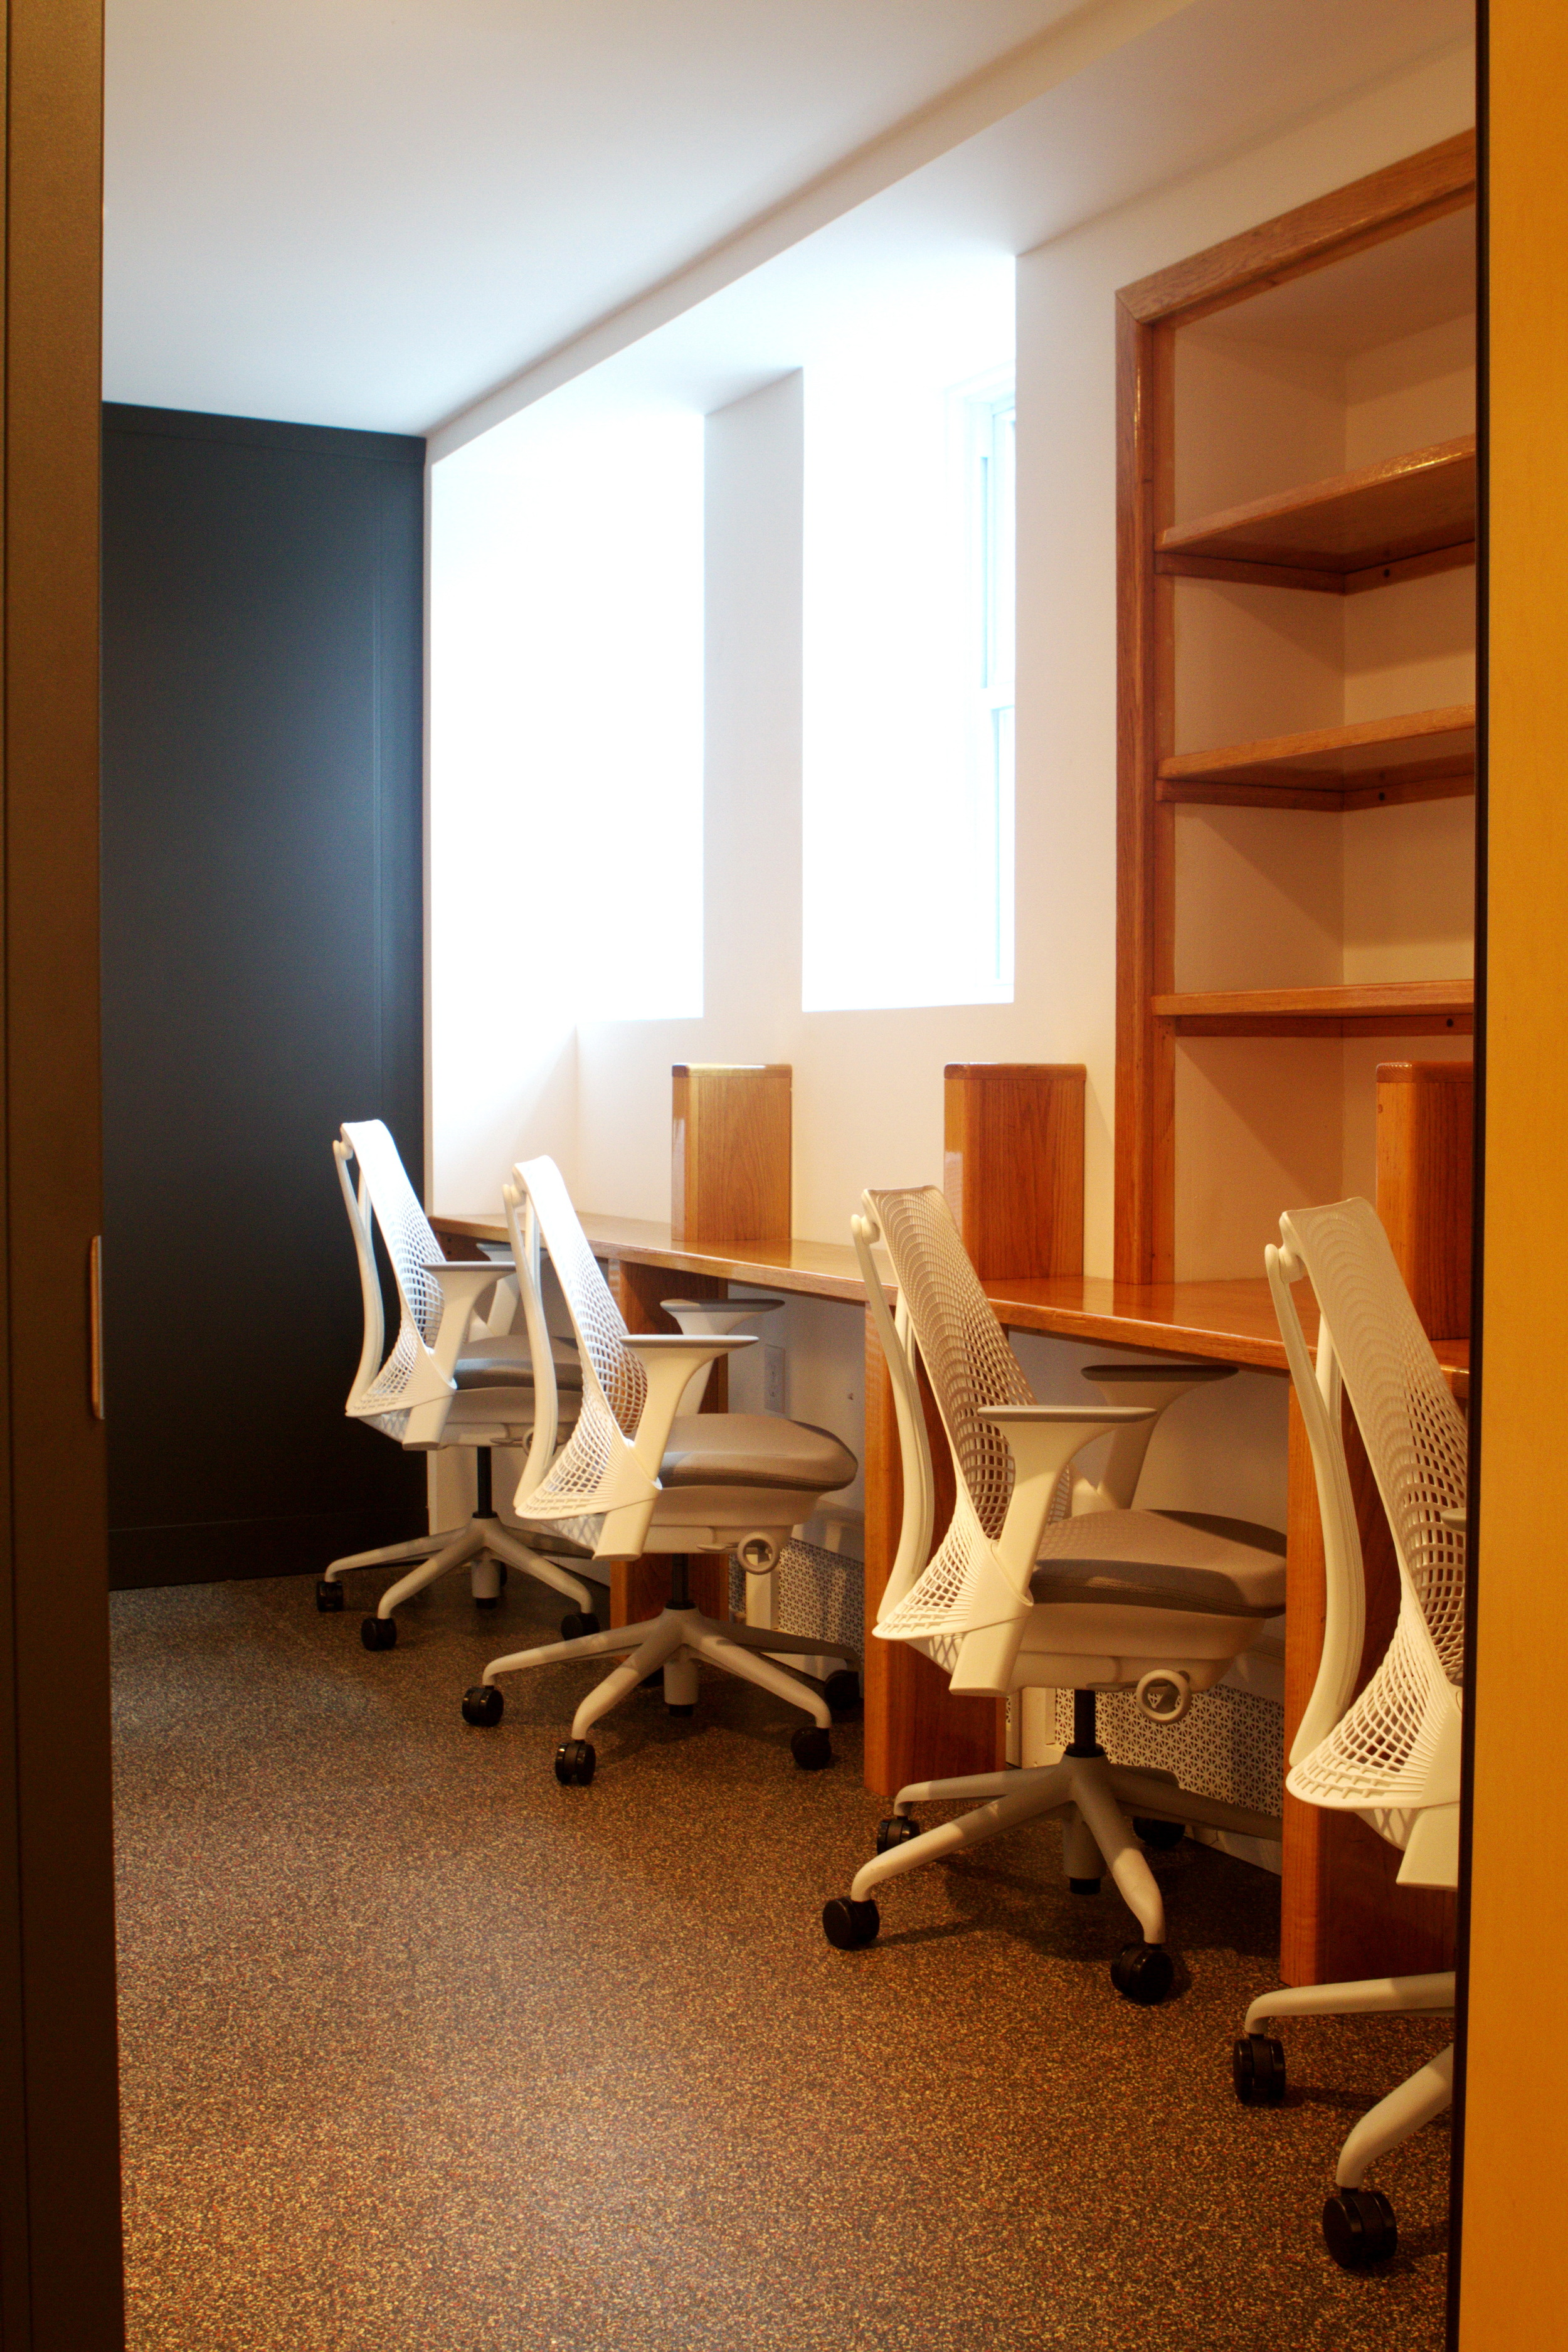 Architecture Photography: Office Space